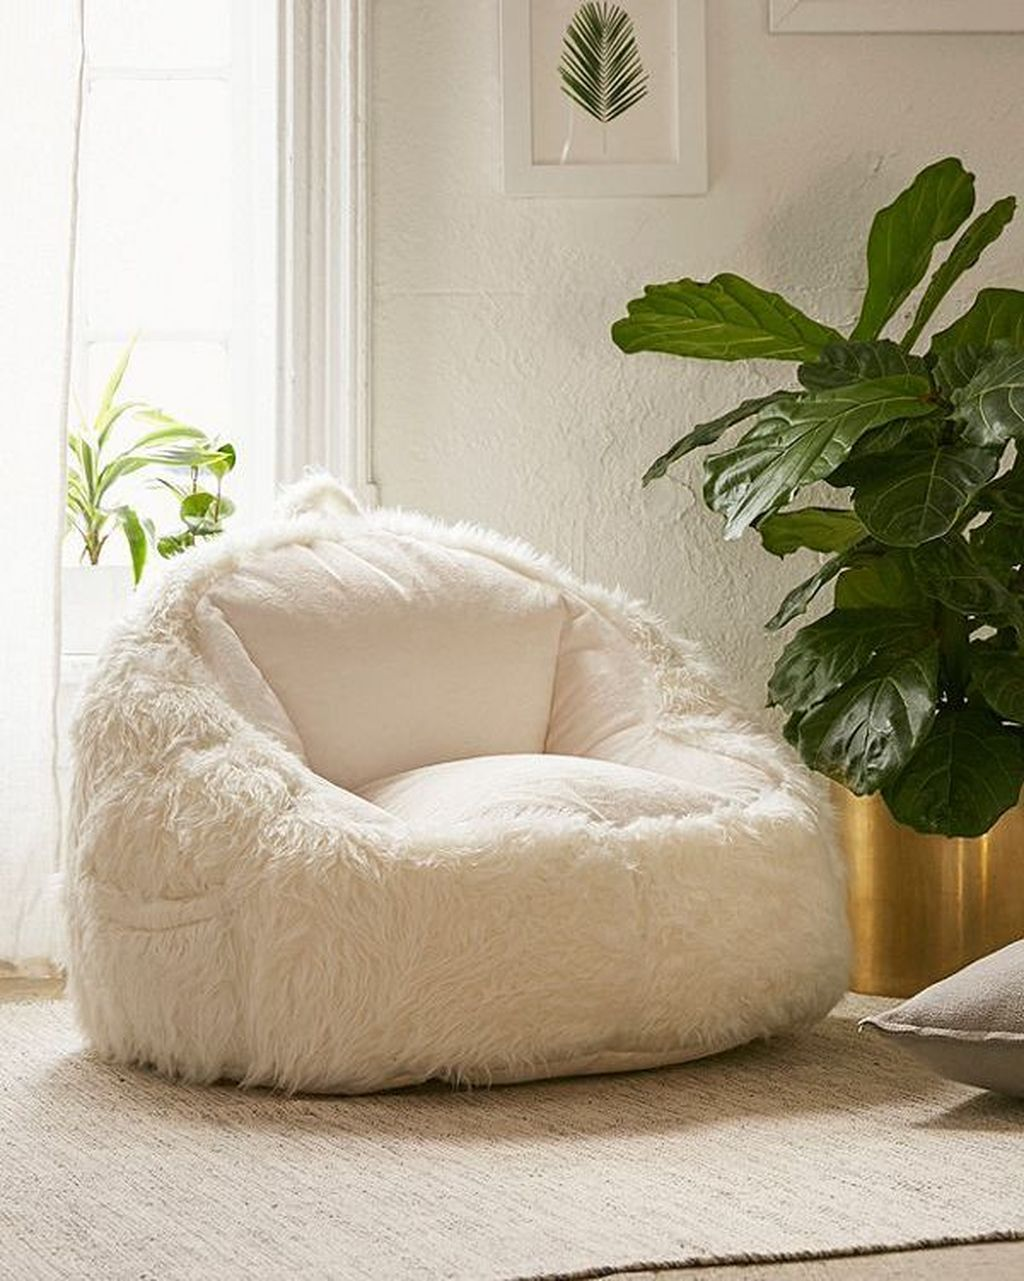 Gorgeous Comfy Chairs Design Ideas For Cozy Living Room 06